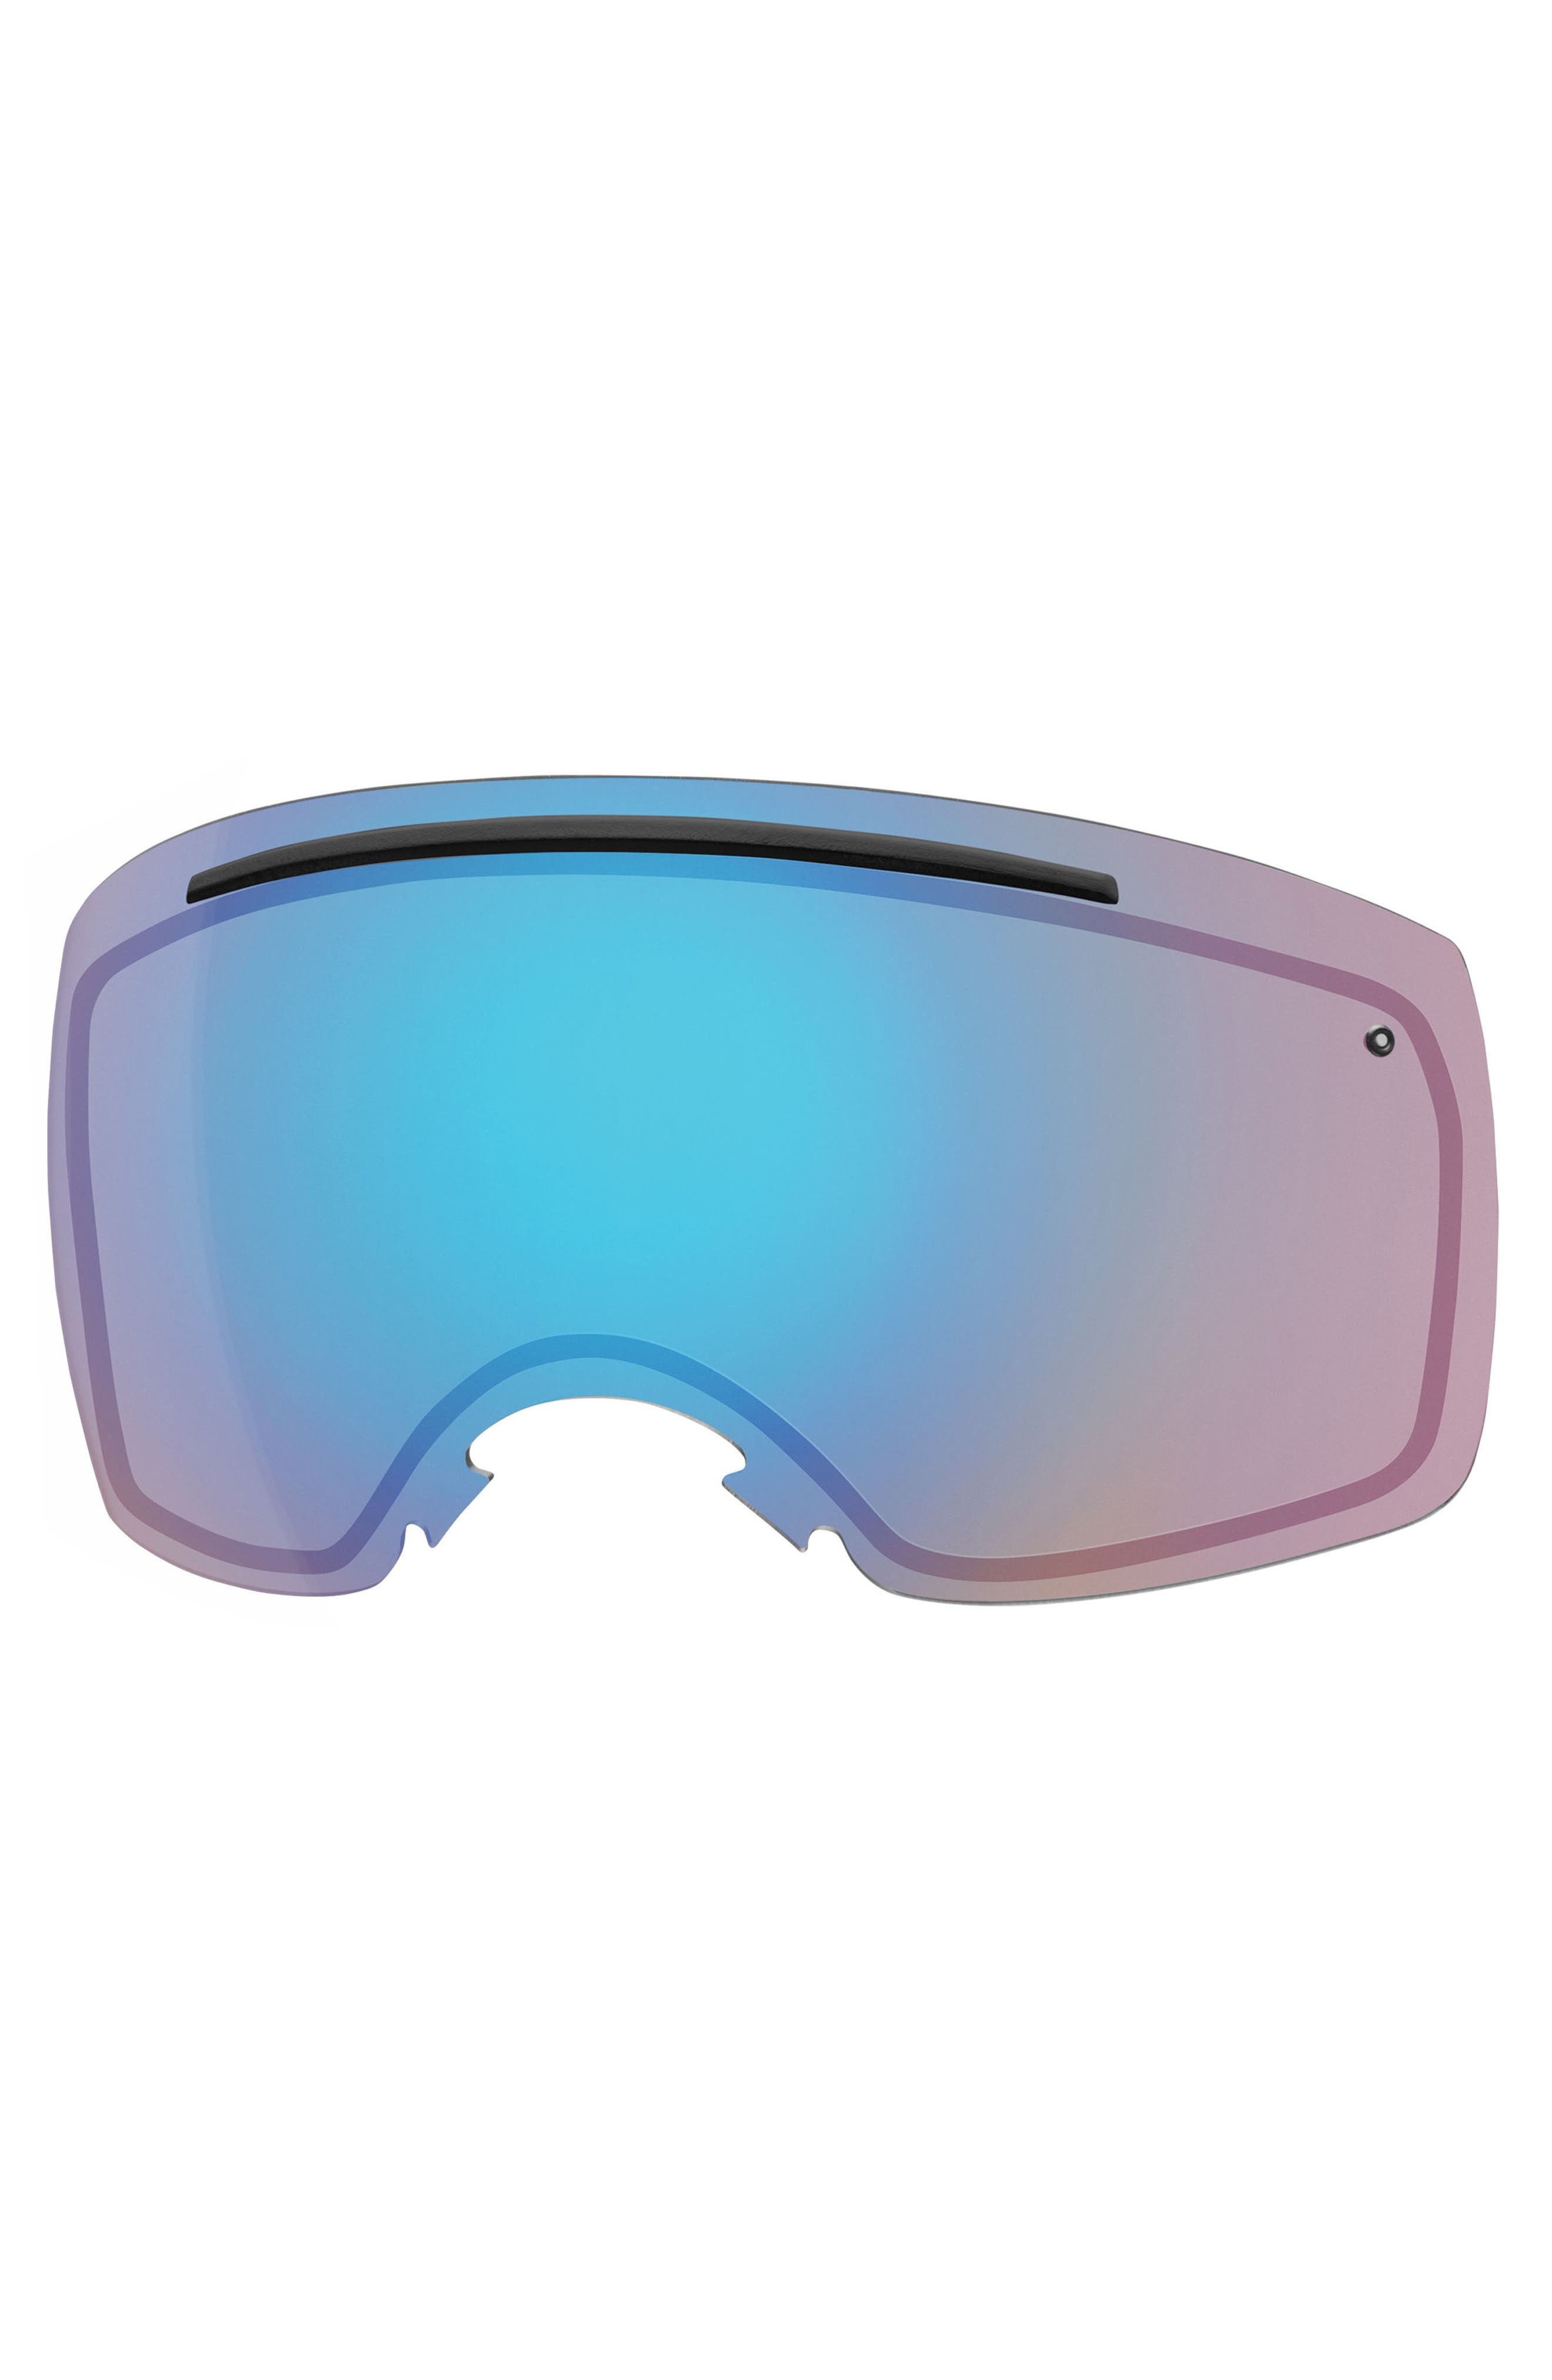 I/O7 Chromapop 185mm Snow Goggles,                             Alternate thumbnail 2, color,                             001